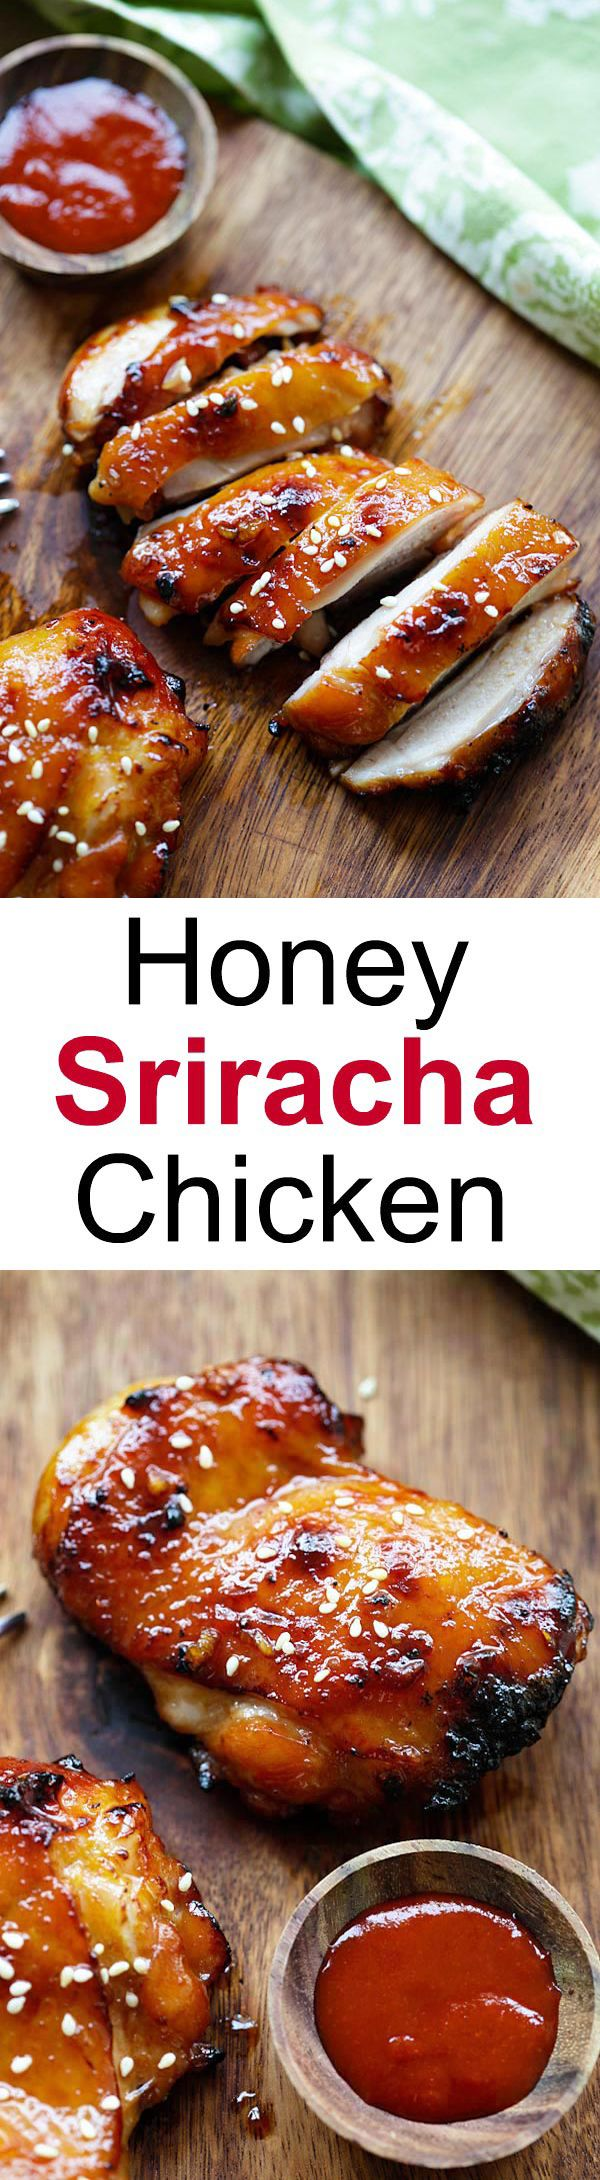 Honey Sriracha Chicken – Make it on a skillet, bake or grill for dinner tonight.